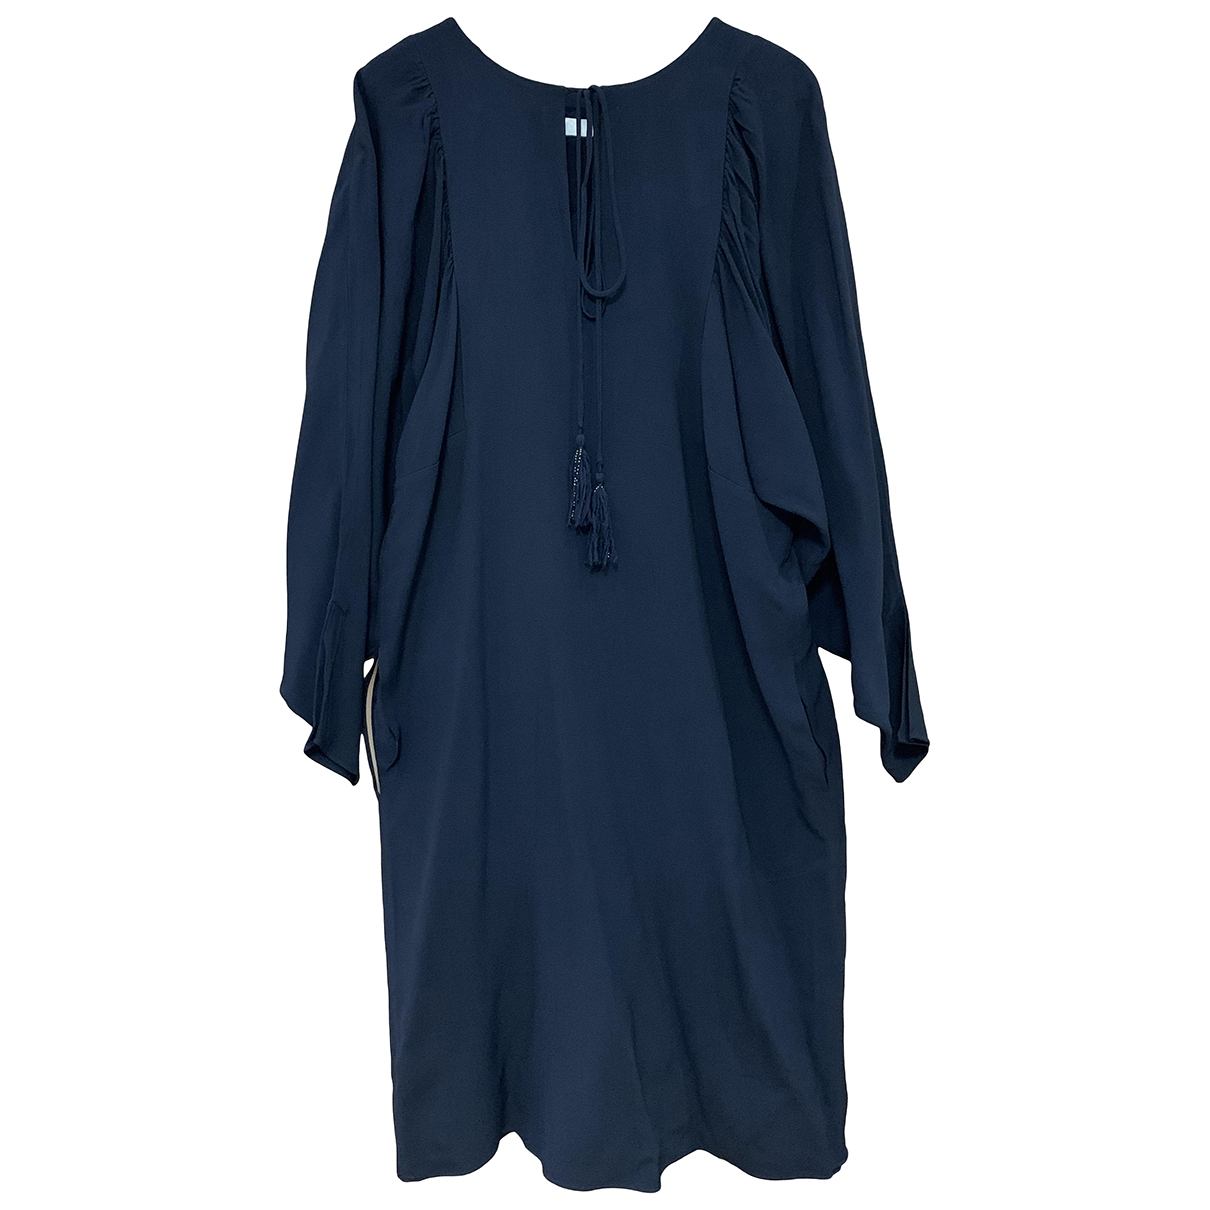 Chloé \N Black dress for Women 34 FR